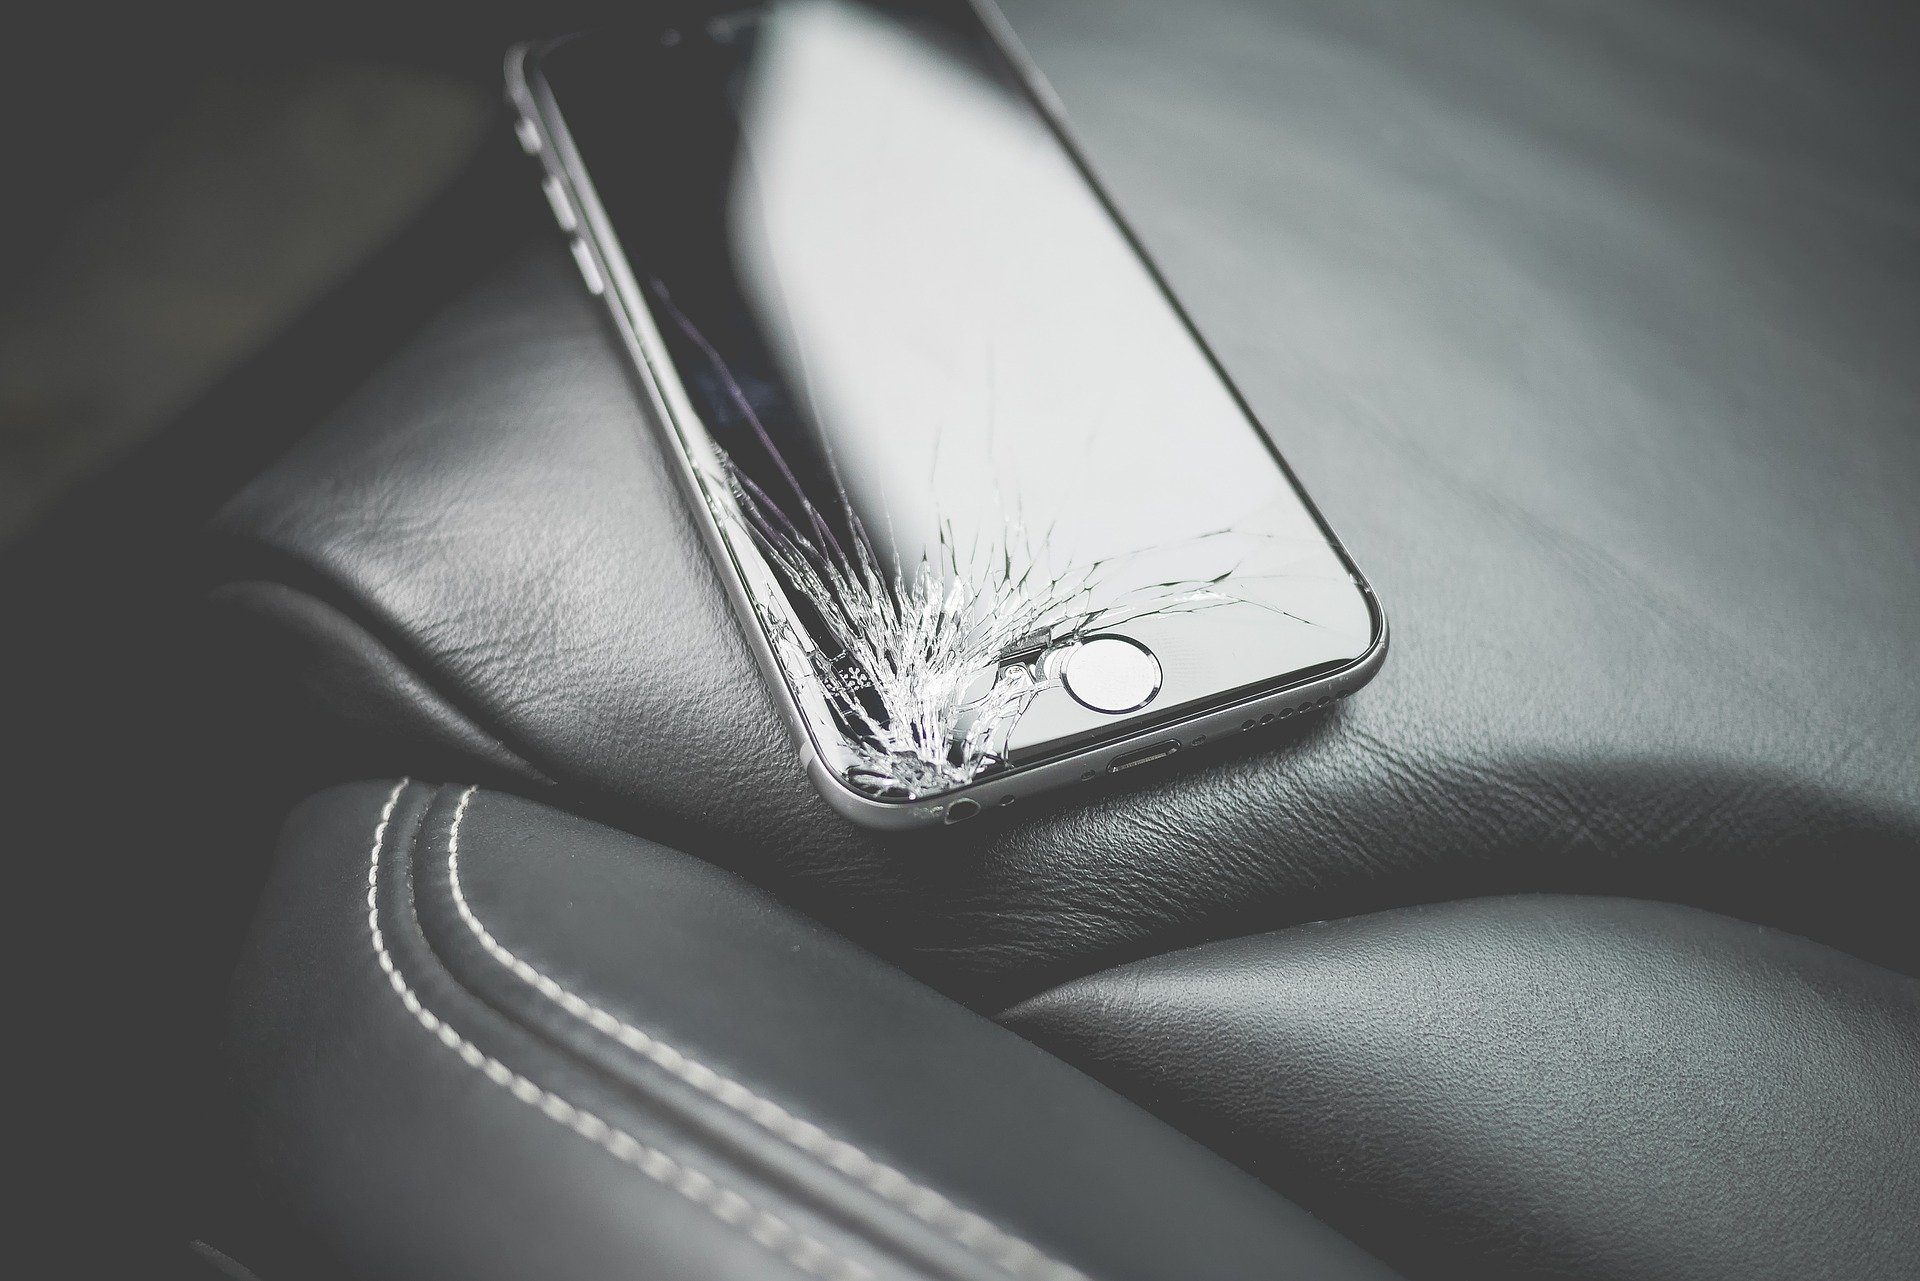 Self Healing Glass Could Mean End Of Smashed Phone Screens brand 1867756 1920